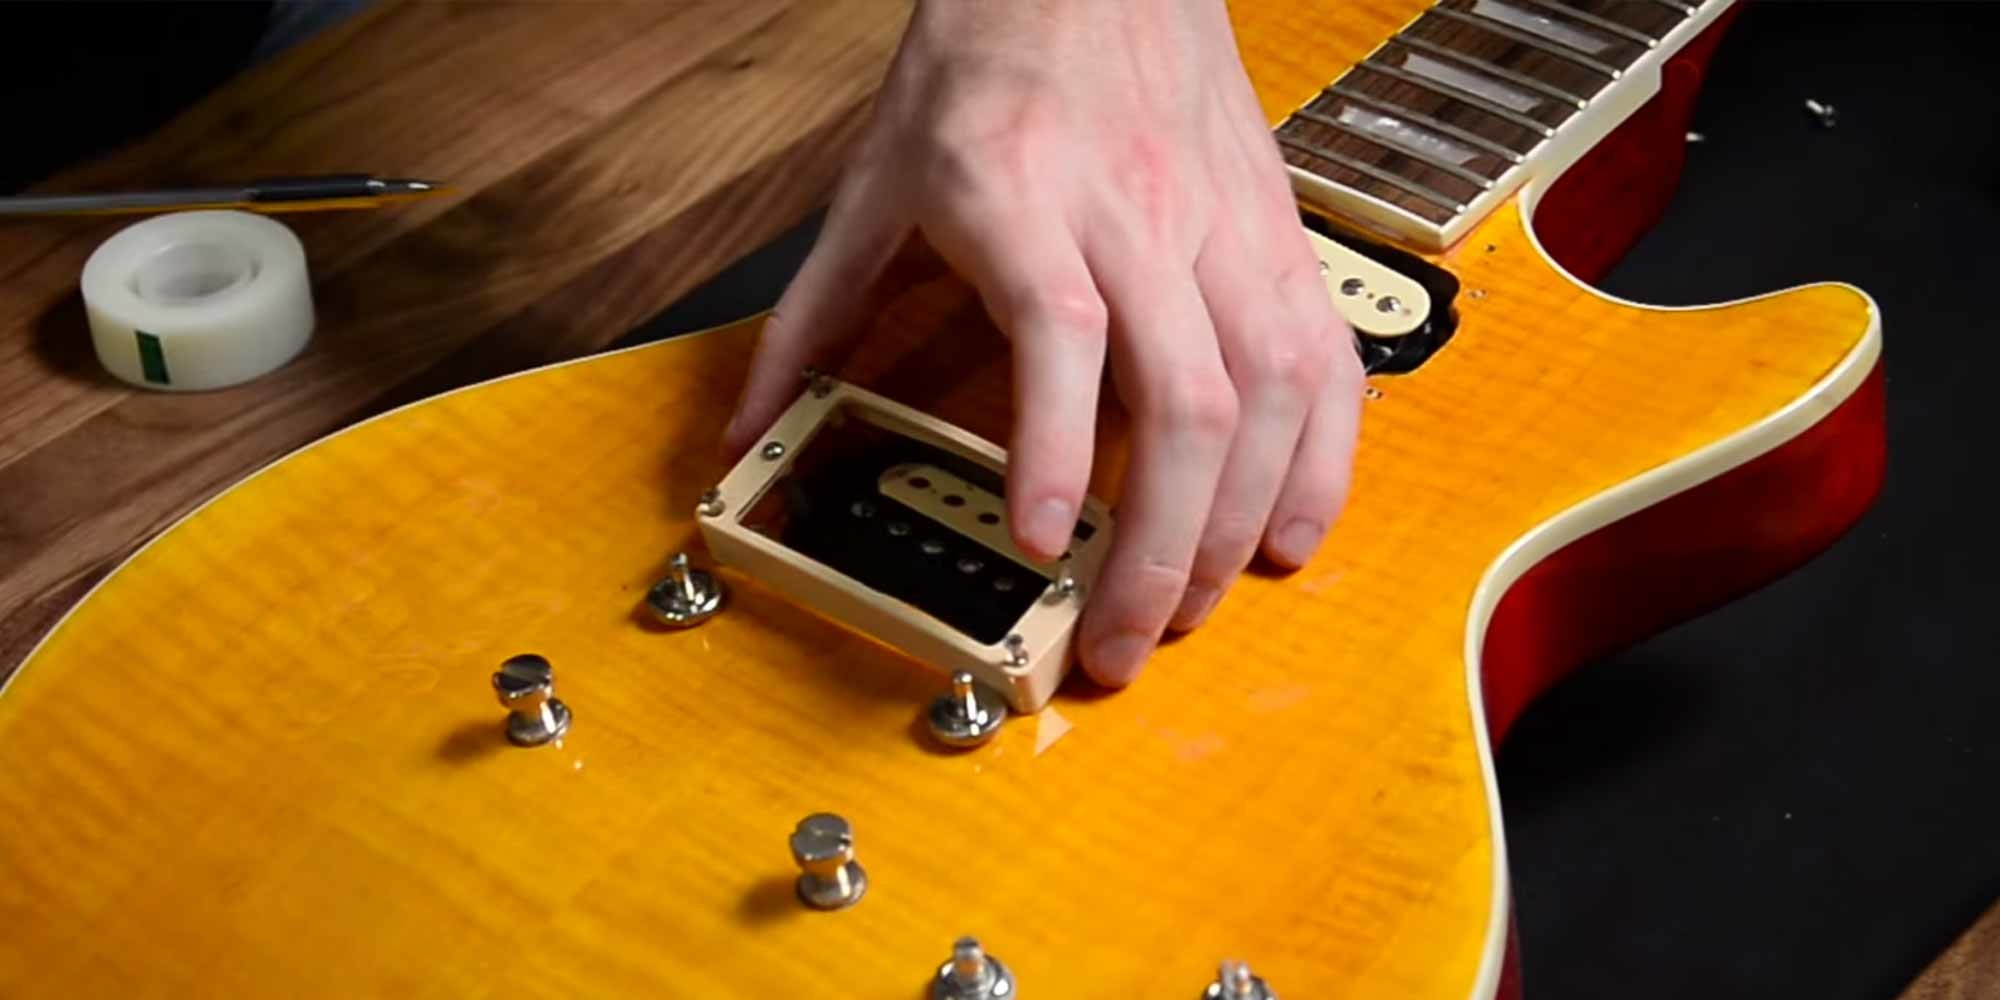 A Brief Introduction to Swapping Guitar Pickups